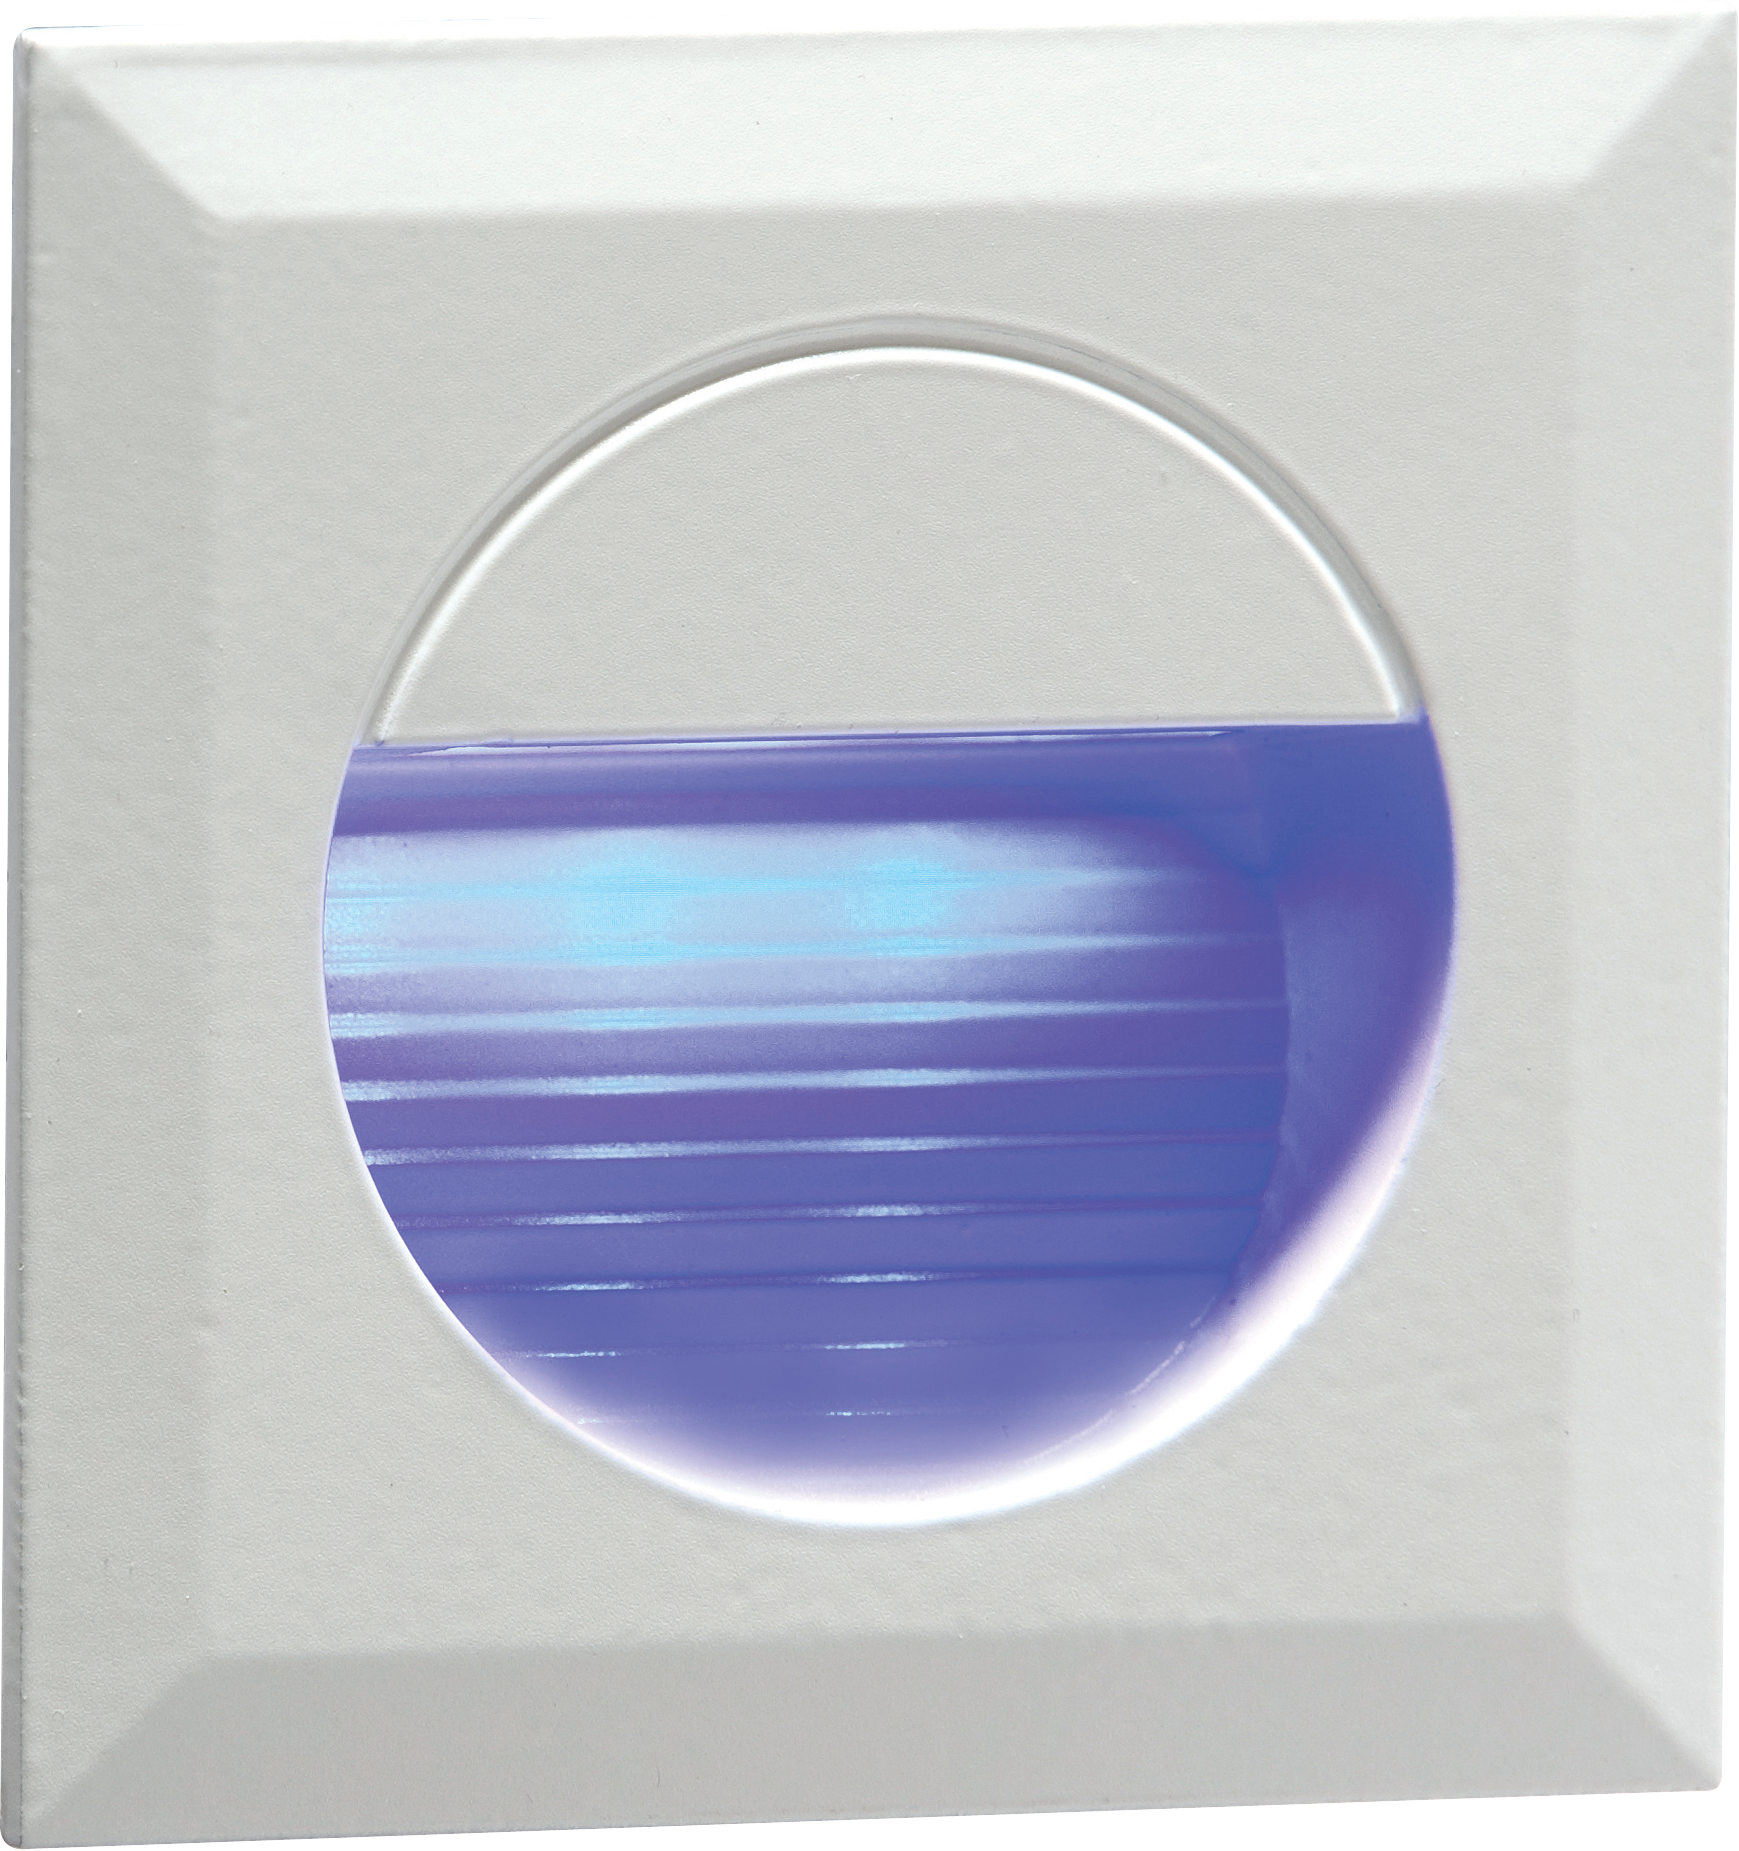 Stair Wall Light Blue LED Knightsbridge NH019B 230V Recessed IP54 Square Ind